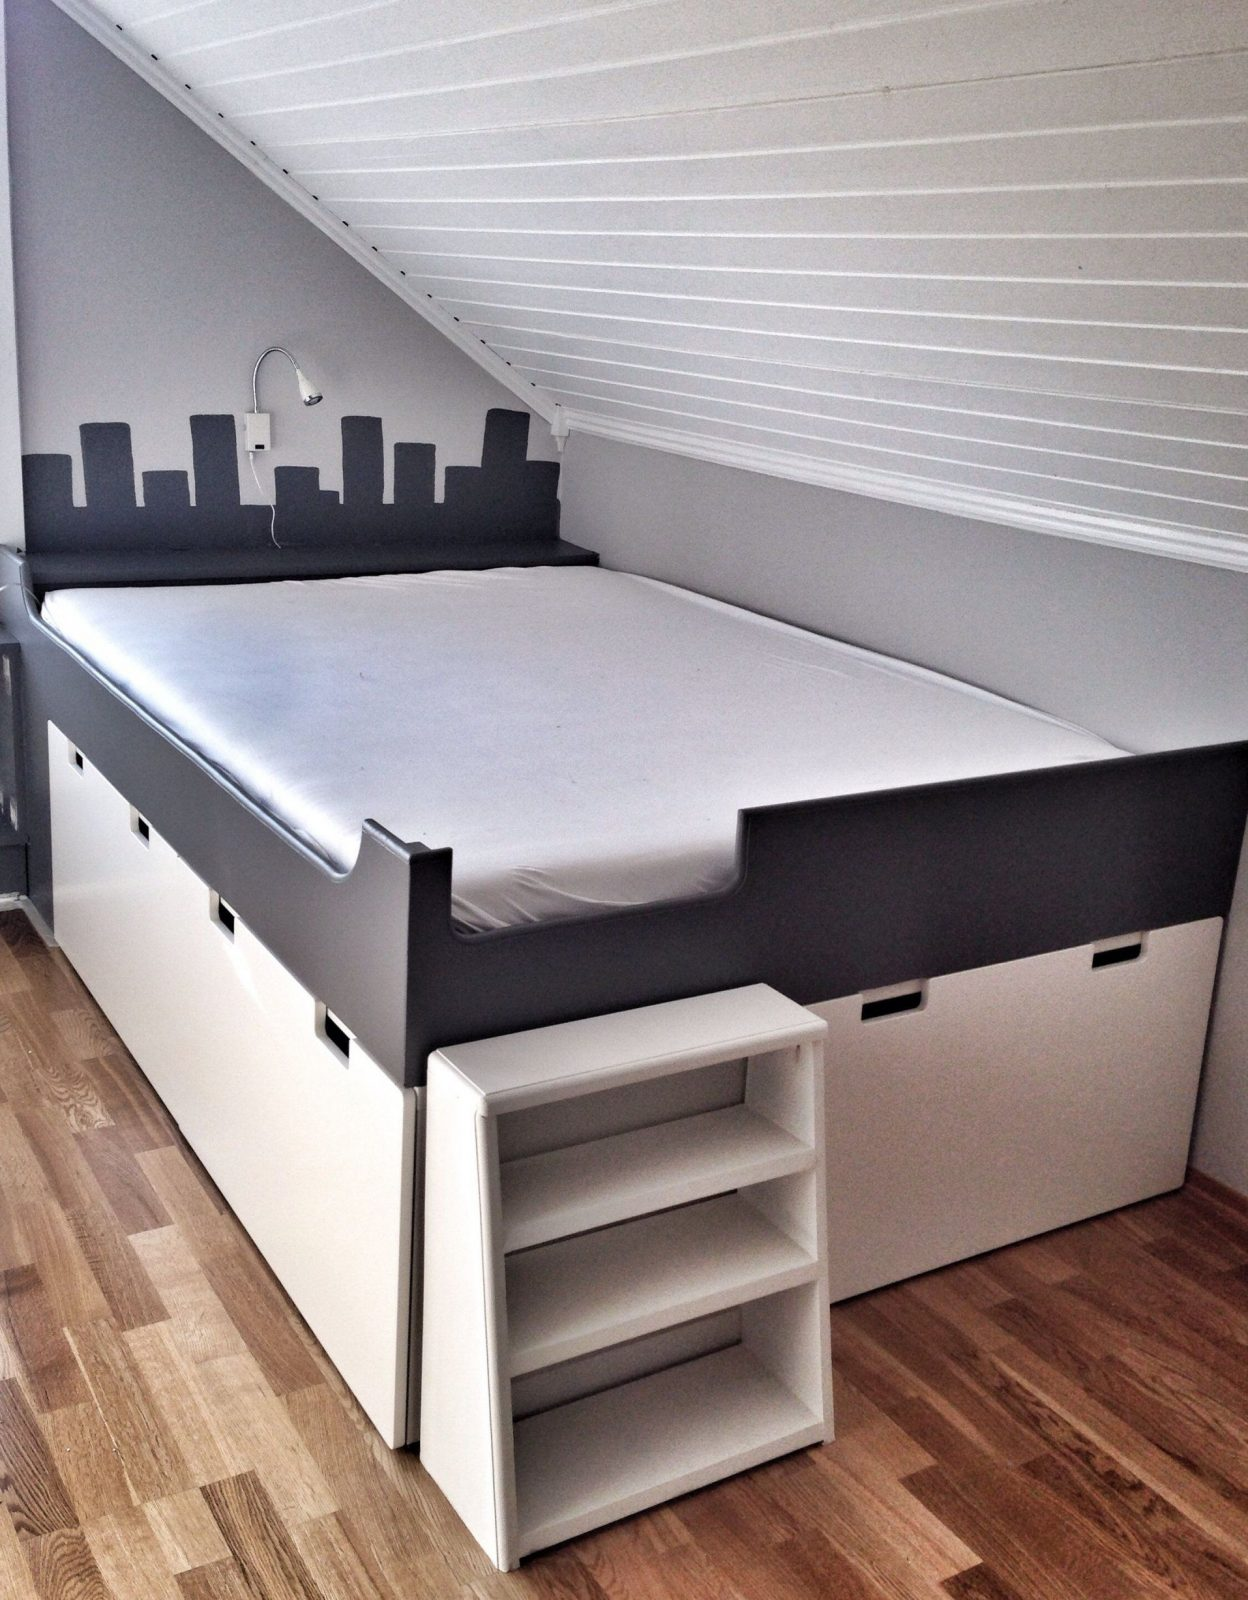 Bett Regal Ikea Bett Aus Ikea Regal Bauen Haus Design Ideen